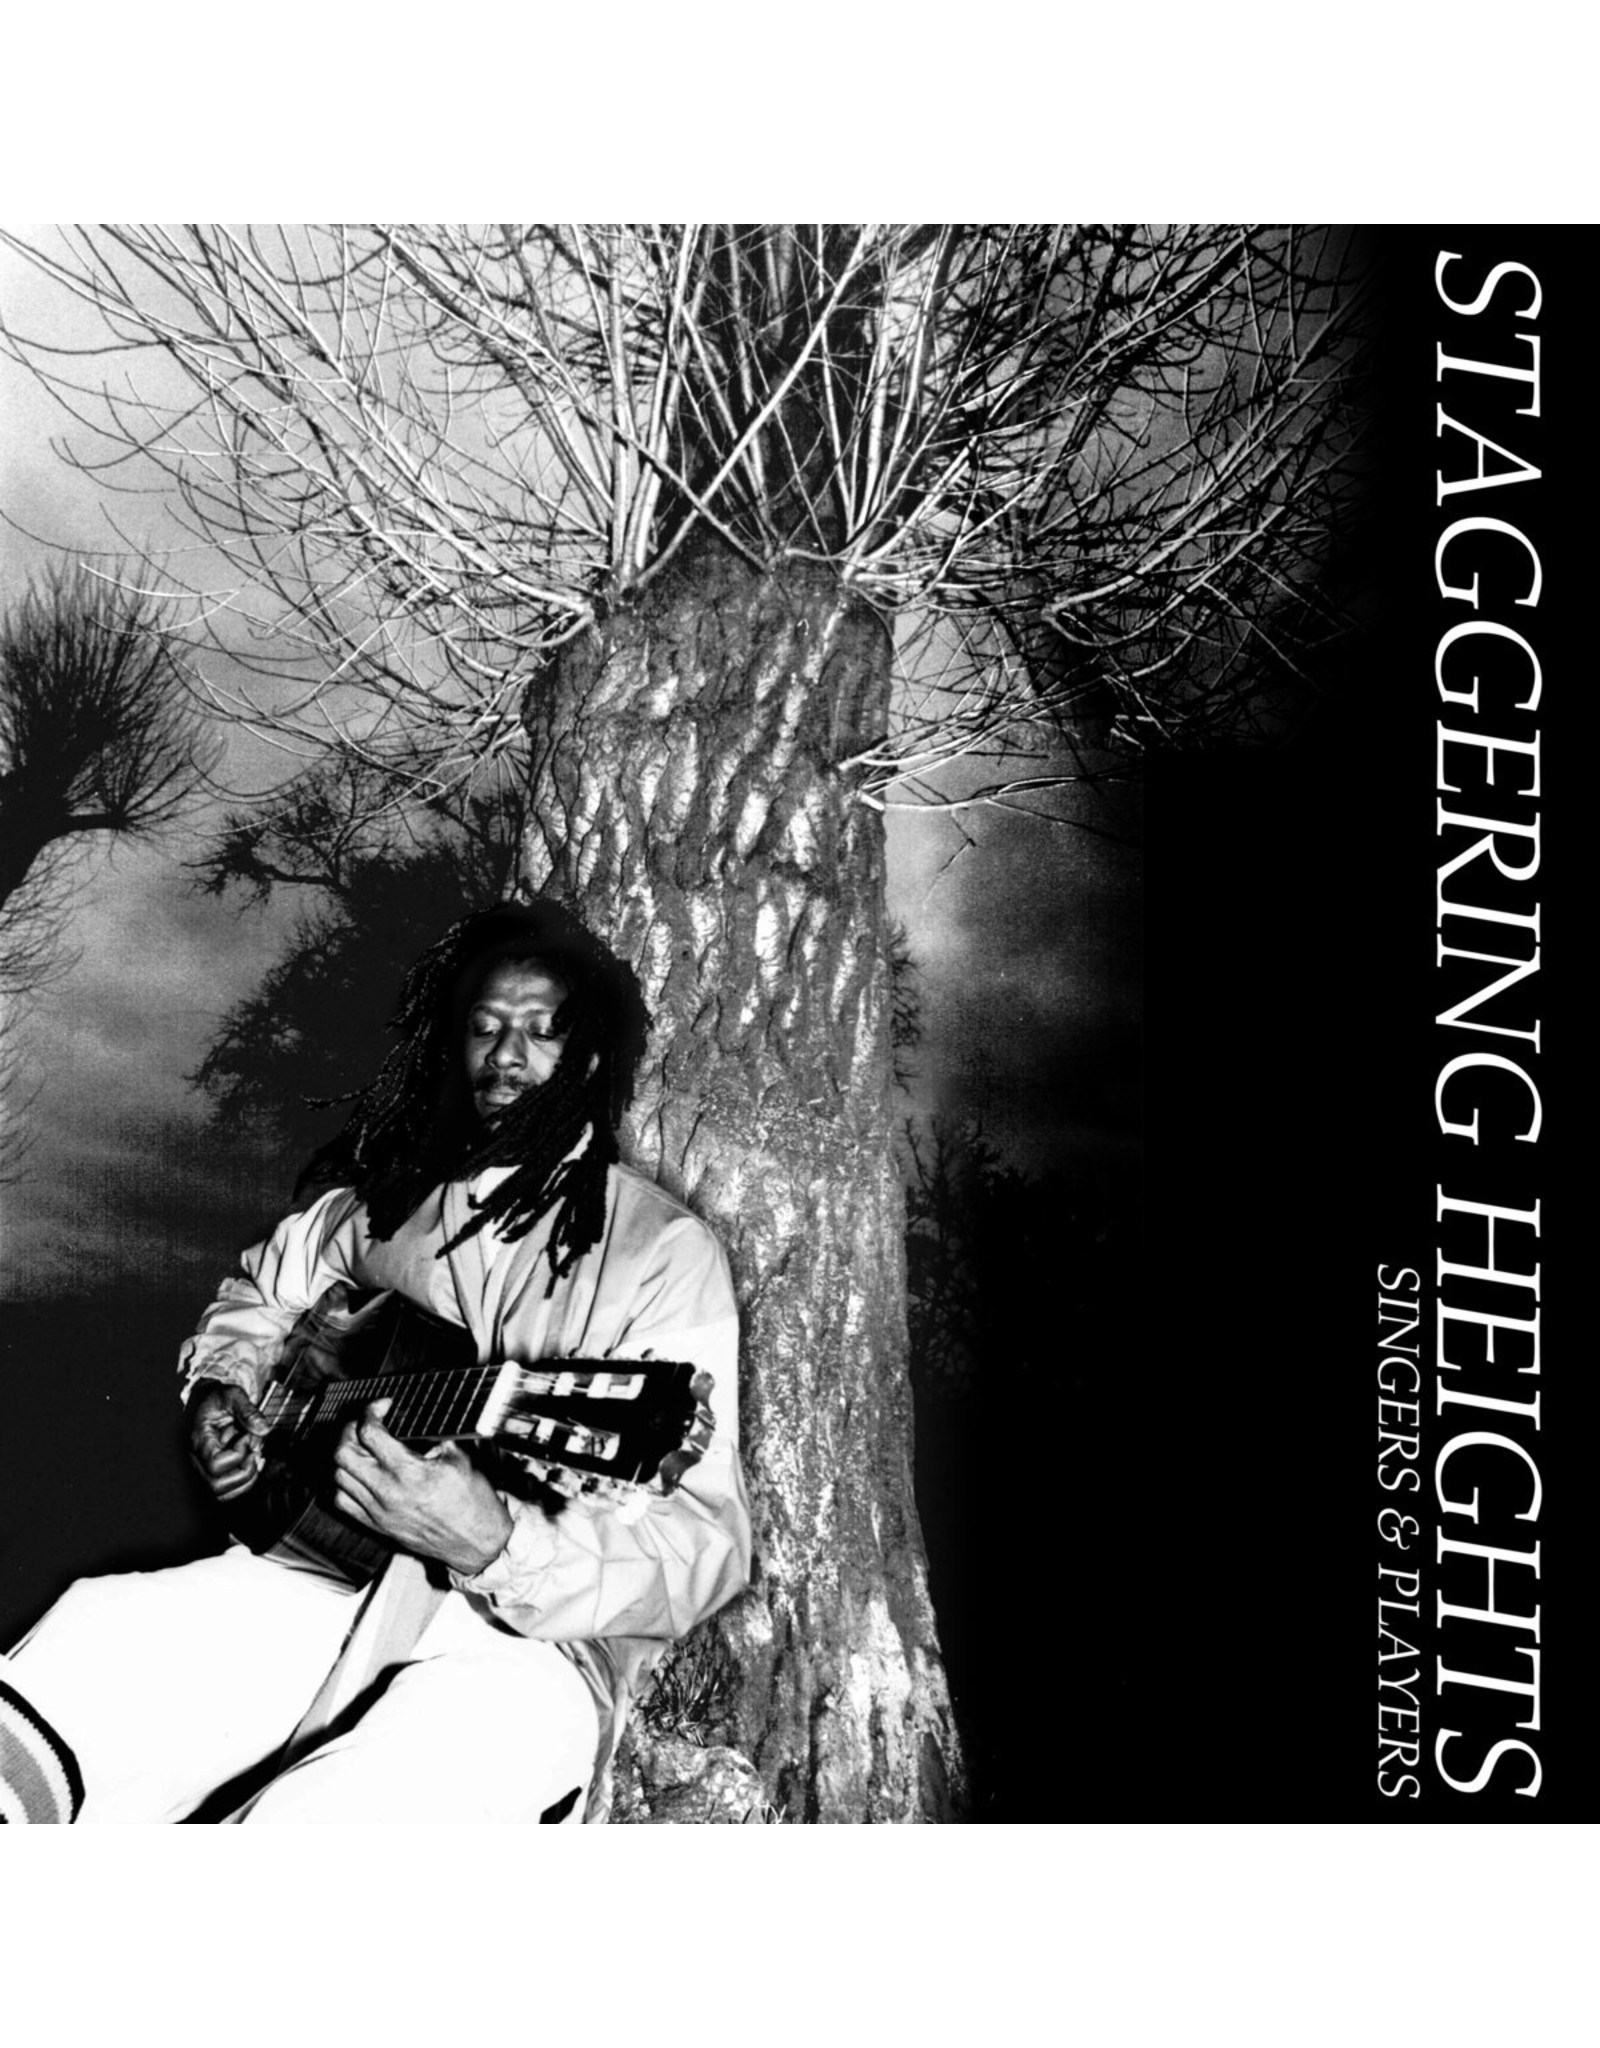 New Vinyl Singers & Players - Staggering Heights LP